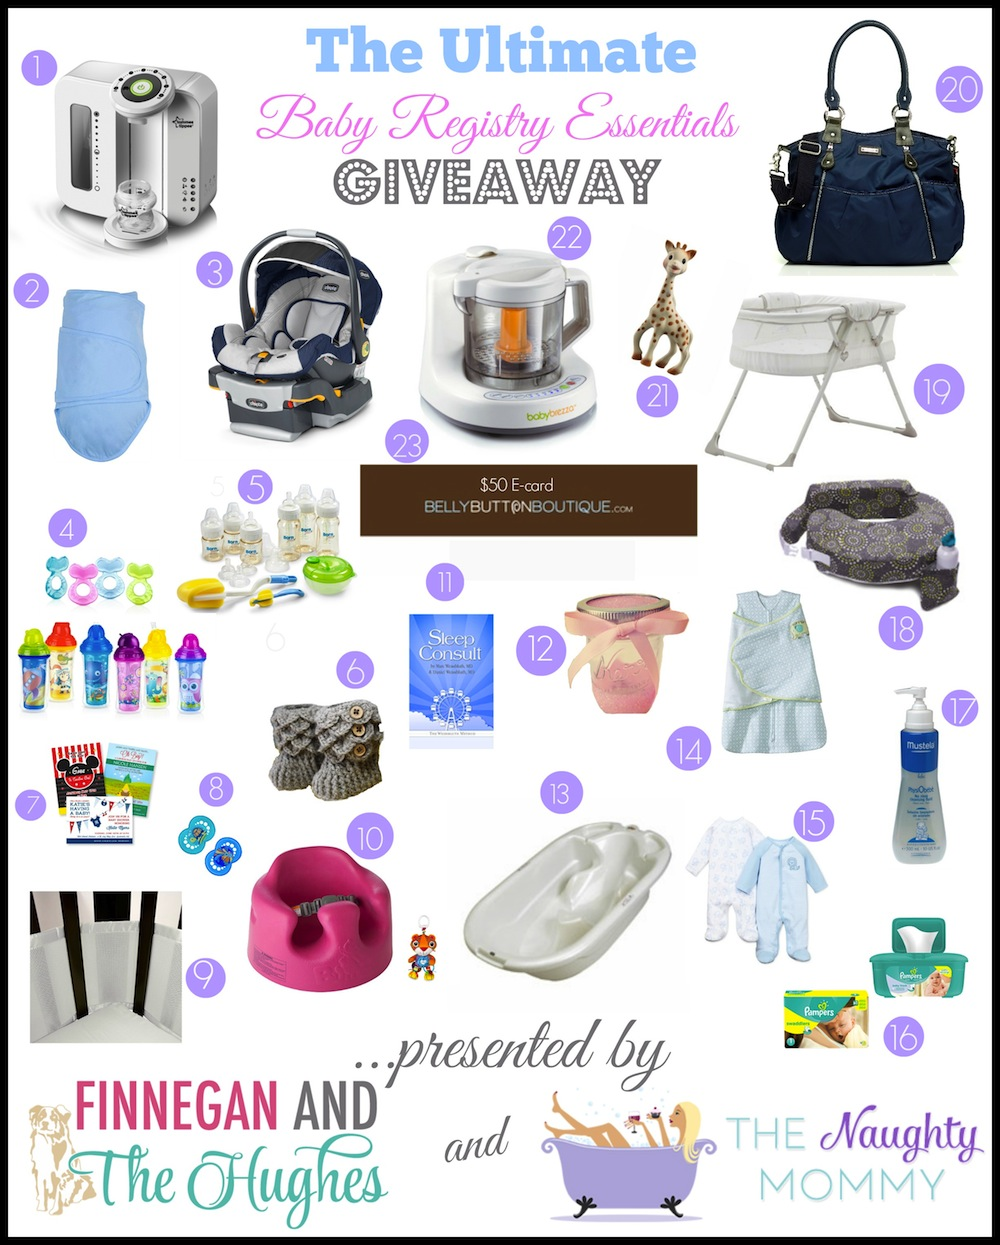 The Ultimate Baby Registry Essentials Giveaway!